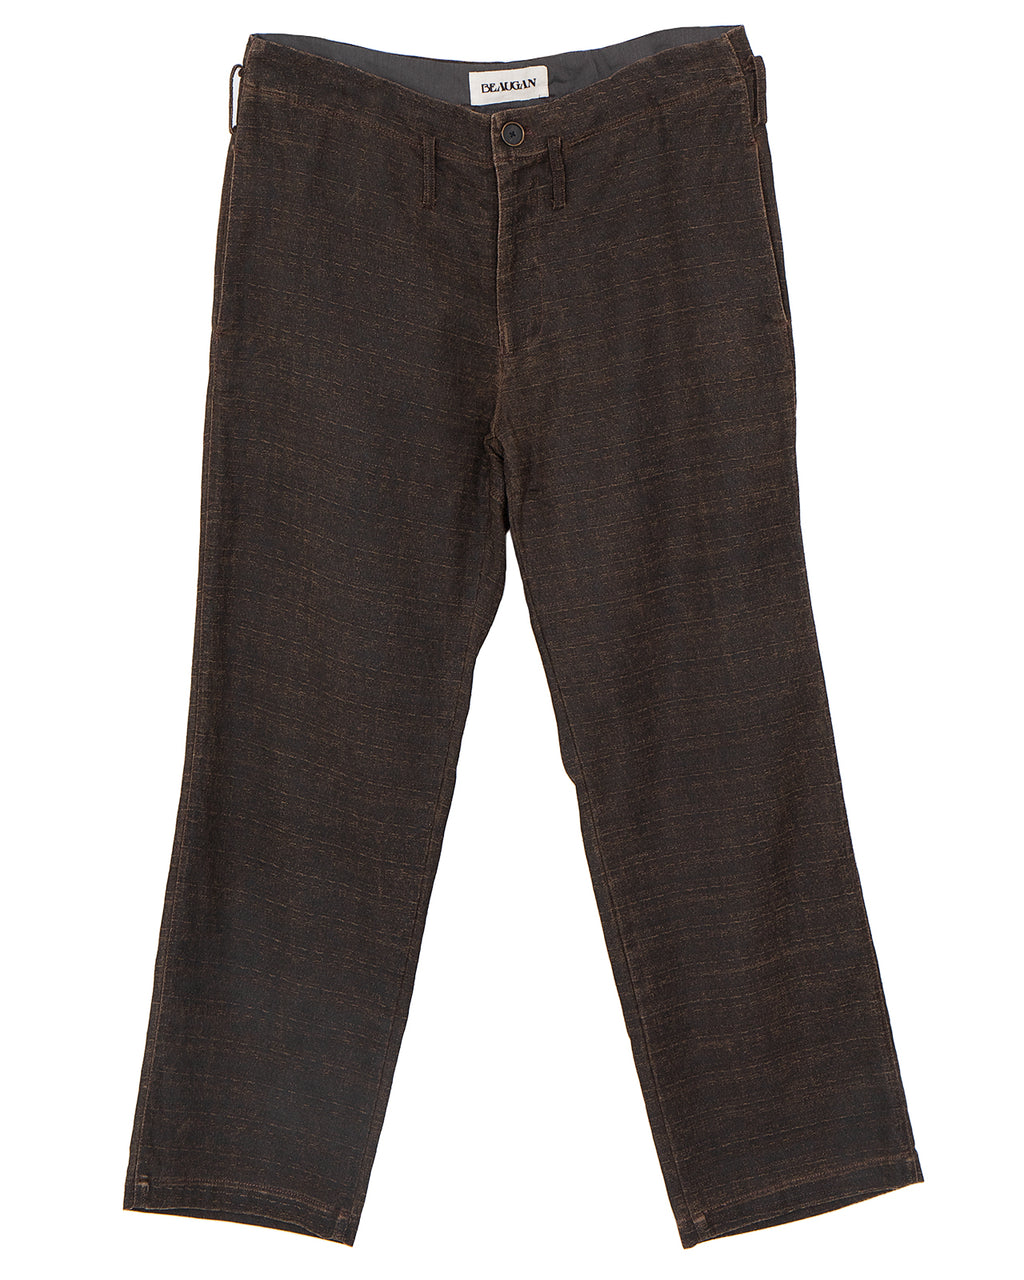 Beaugan Agriculture Pant, Mud